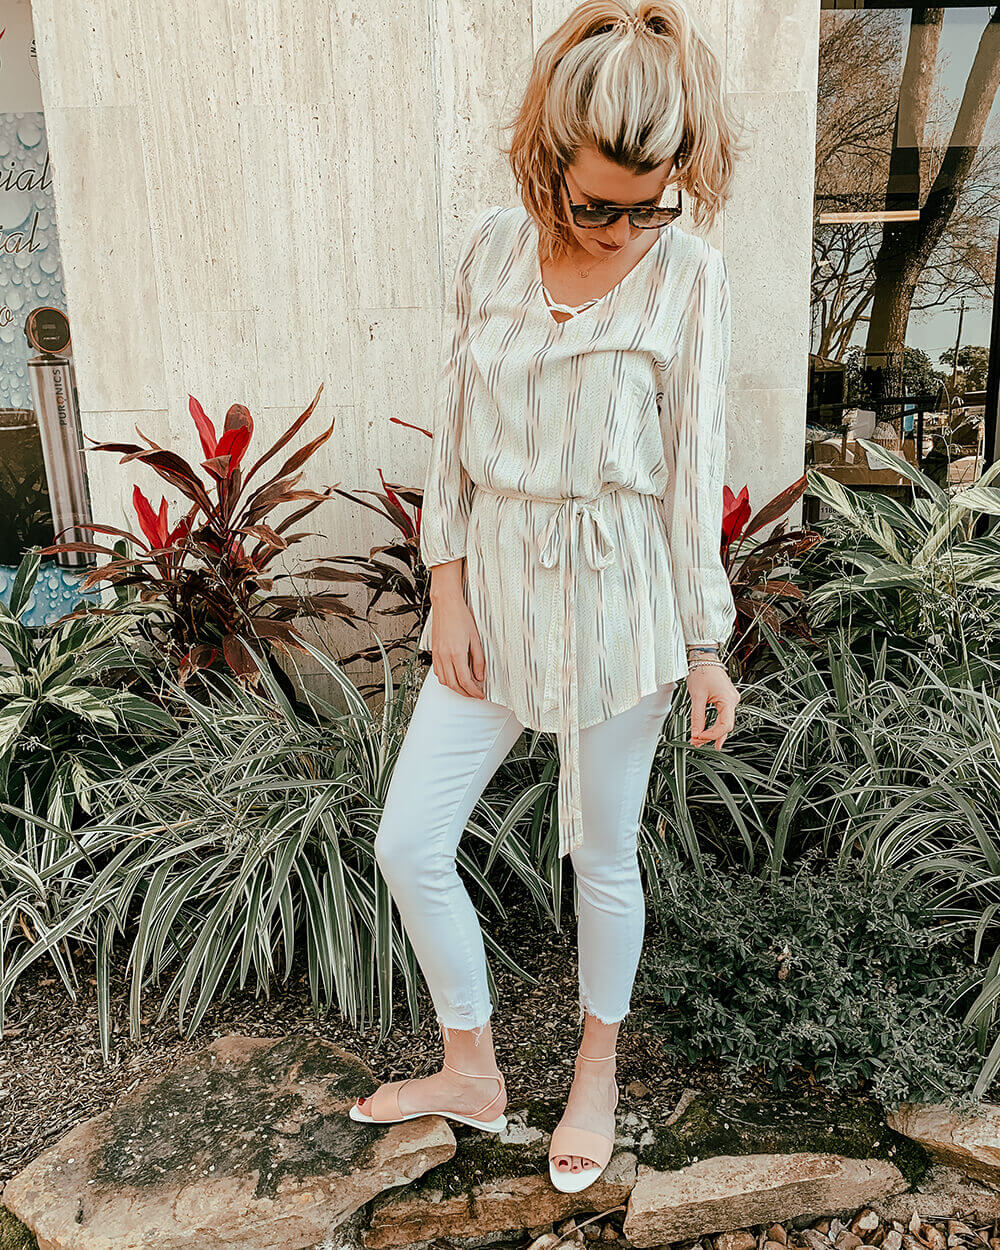 White Jeans Outfit Ideas - 5 Ways to Wear White Jeans | White Jeans Outfits | All White Outfits Summer | What to Wear With White Jeans | AMO Babe High Rise Jean | Eberjey Dream Catcher Mika Cover Up | Monc Sunglasses Kreuzberg | Dolce Vita Dara Sandal on Sale at Muse Outlet